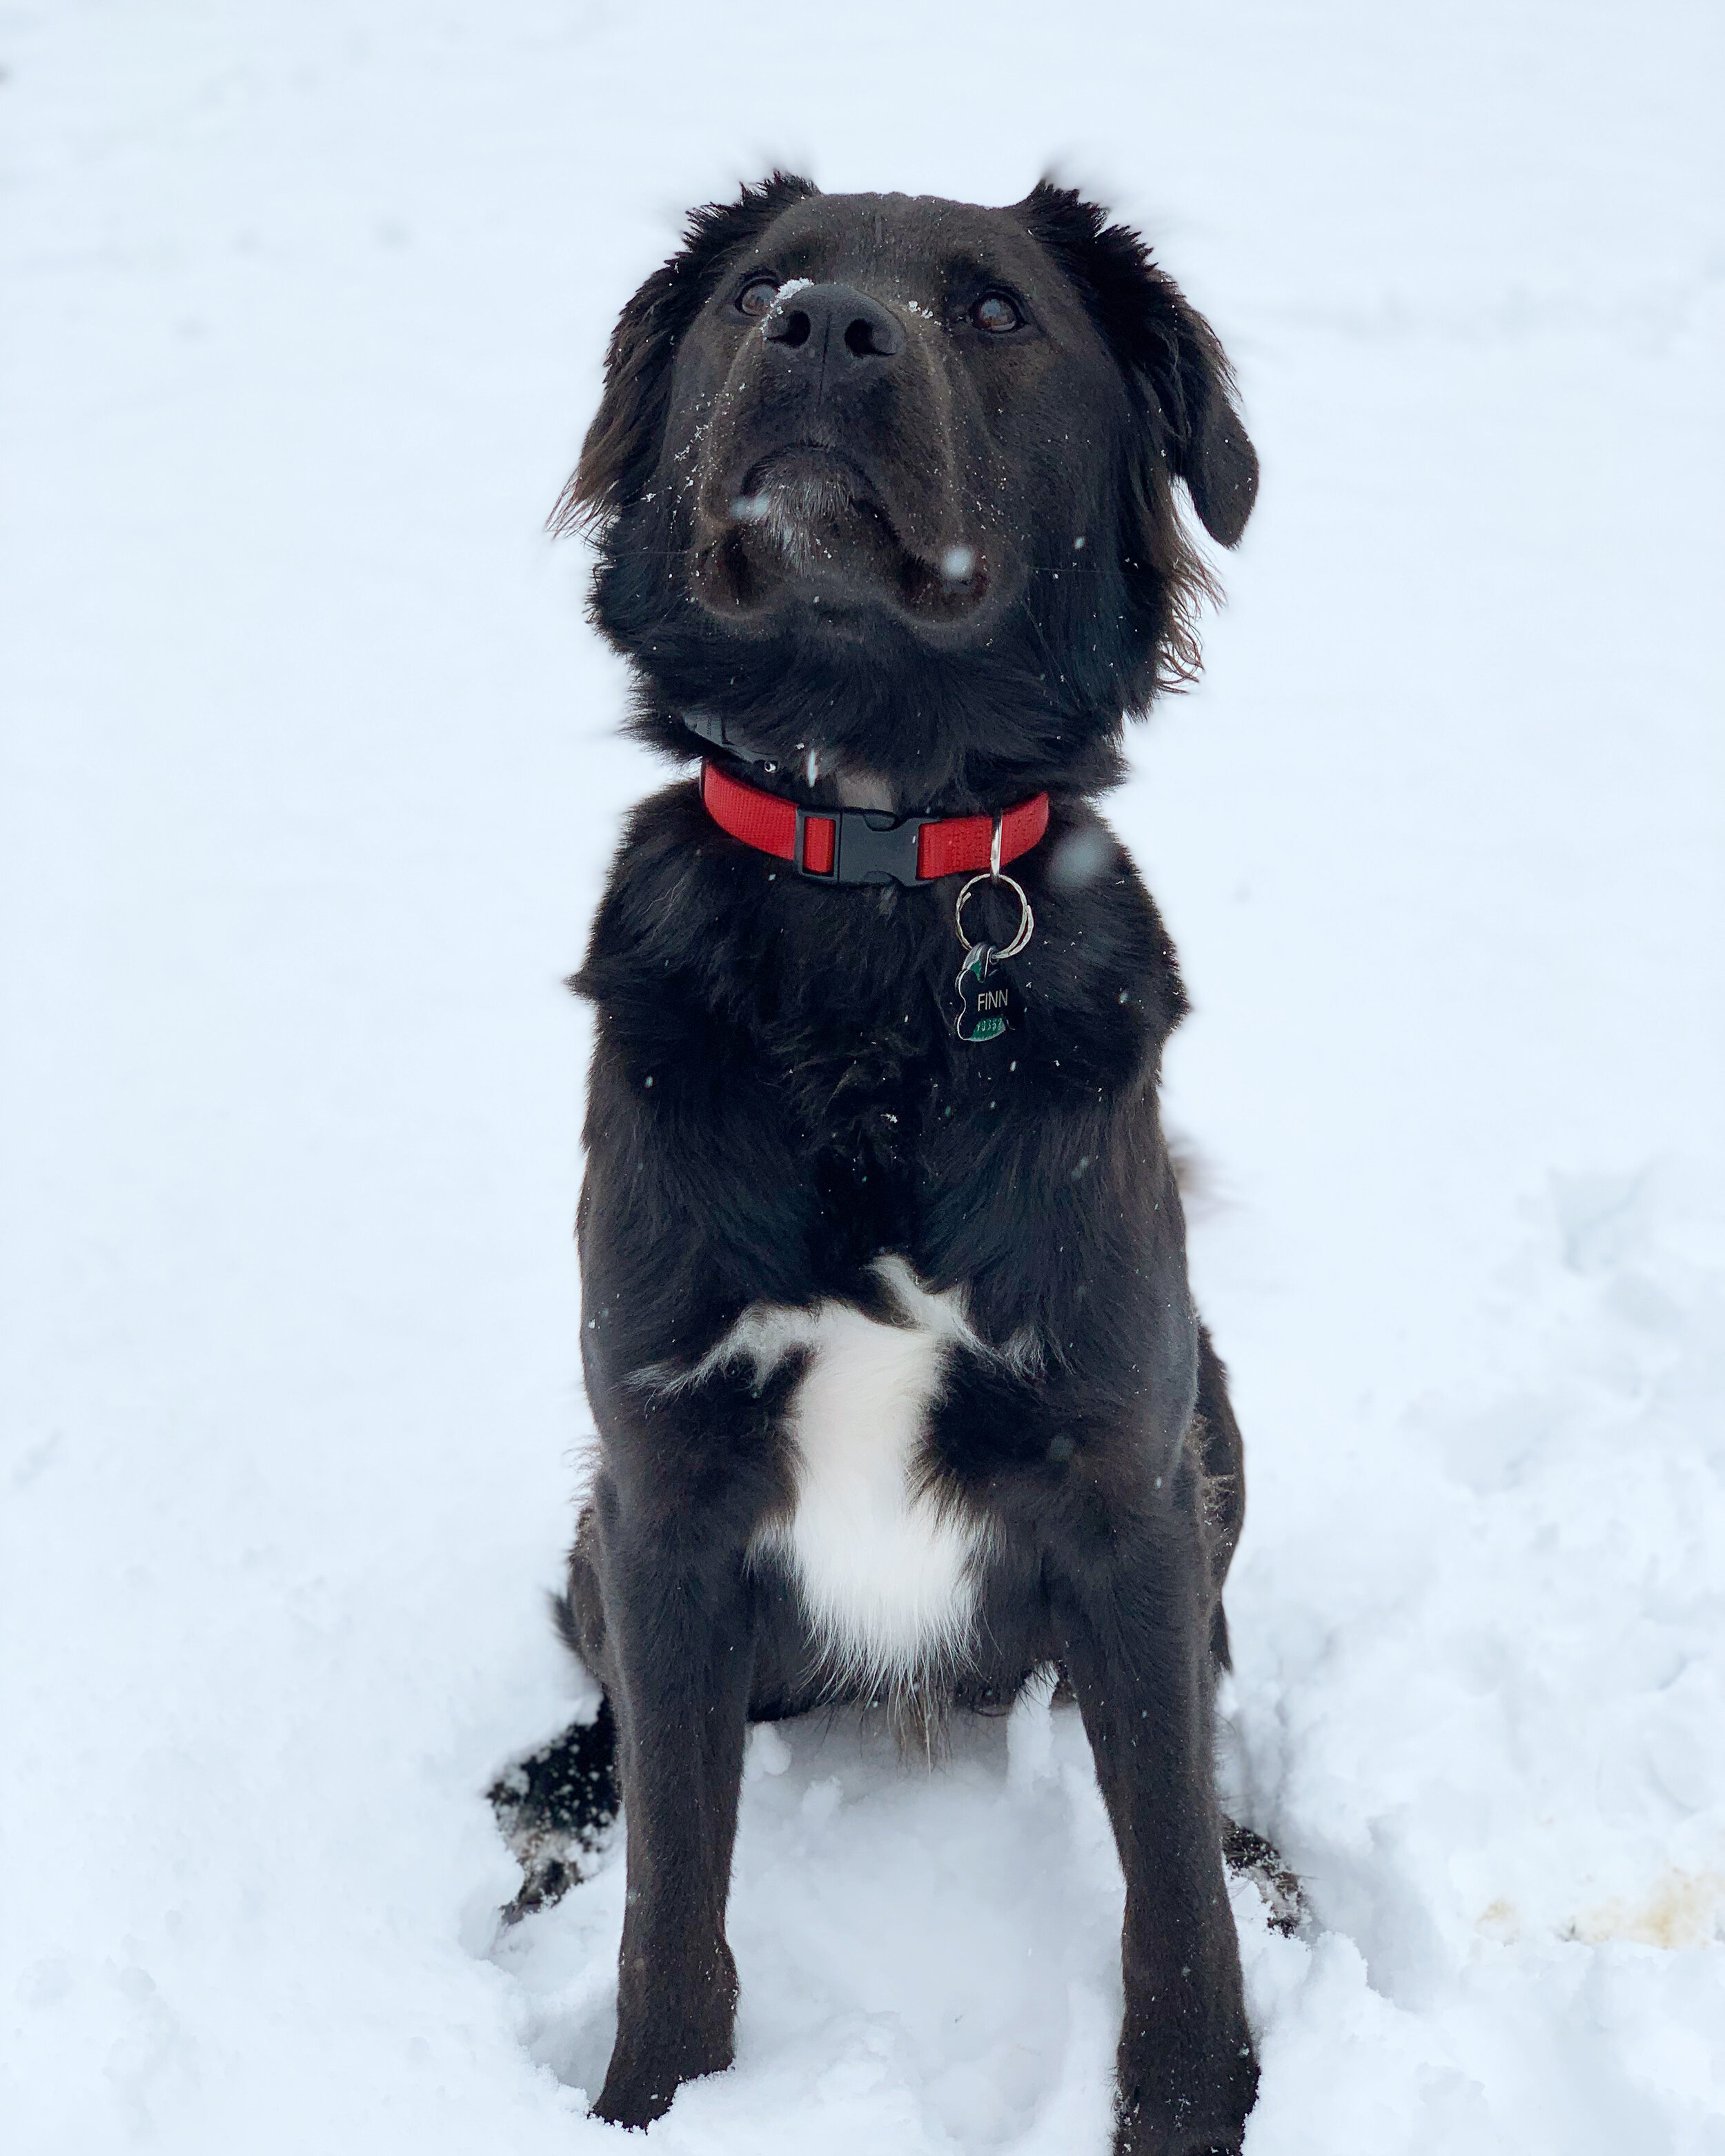 Enjoyed a few snow days with a VERY happy pup.